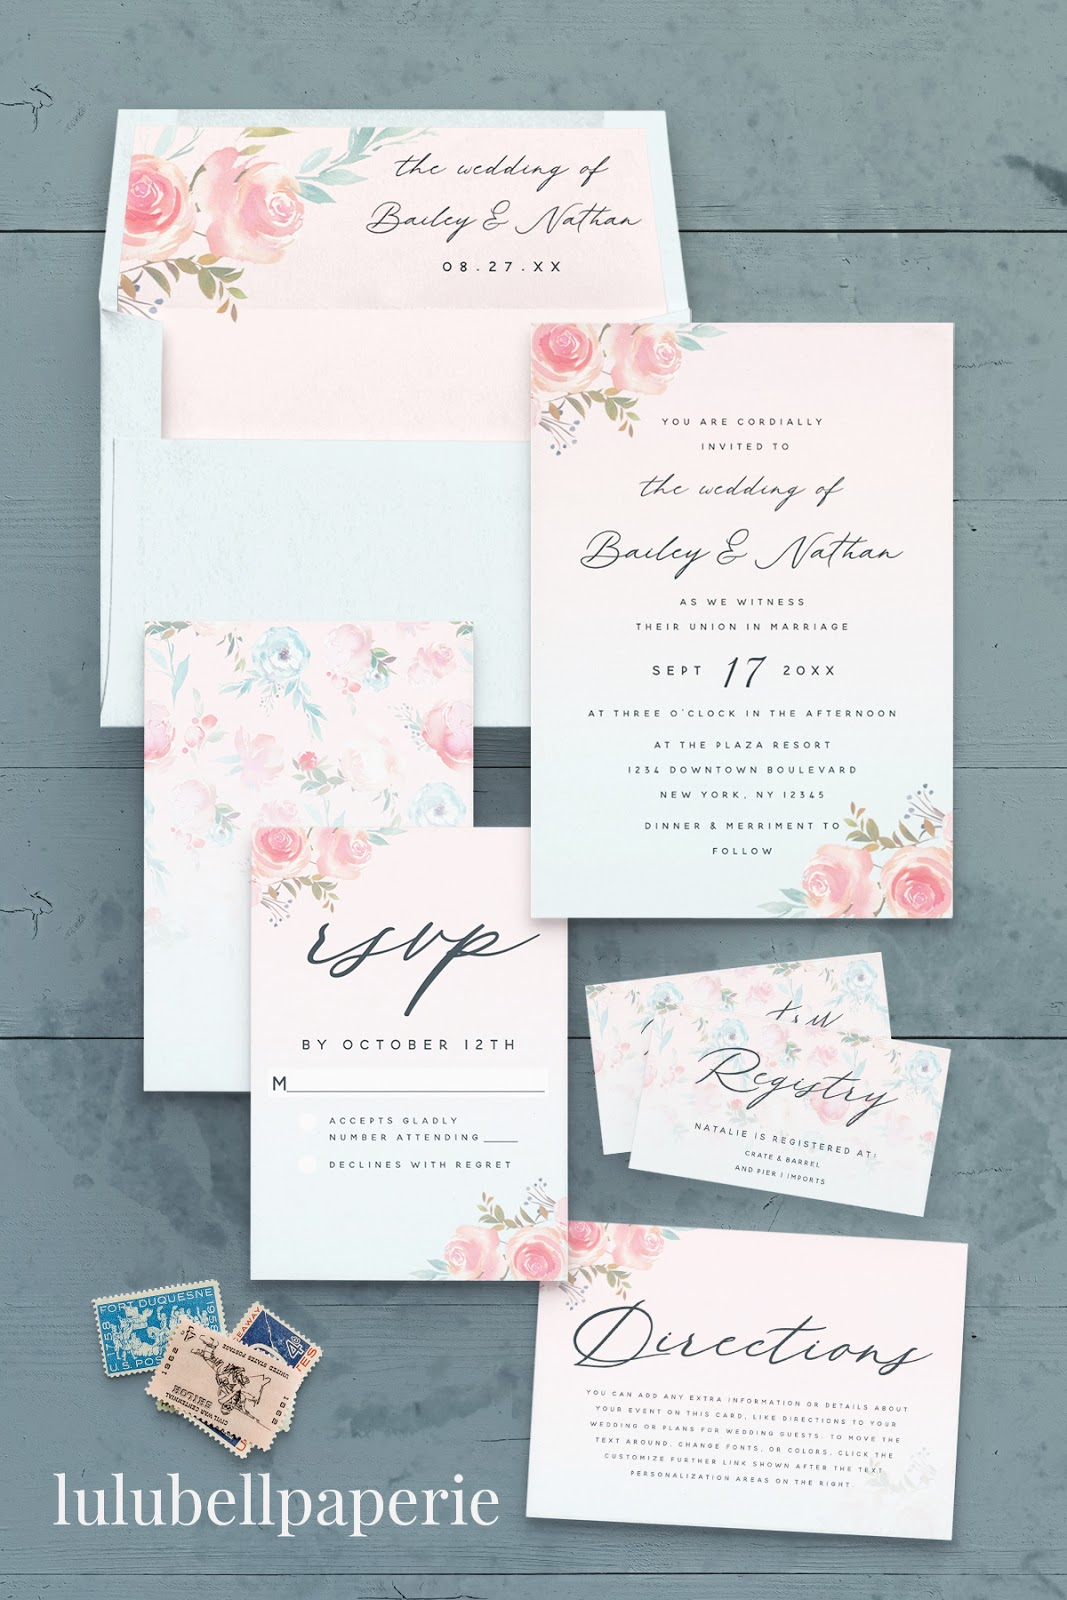 French Garden Floral Wedding Suite - Envelopes and Liners, Wedding Invites, RSVP cards, Gift Registry Inserts, and Directions Enclosure Cards